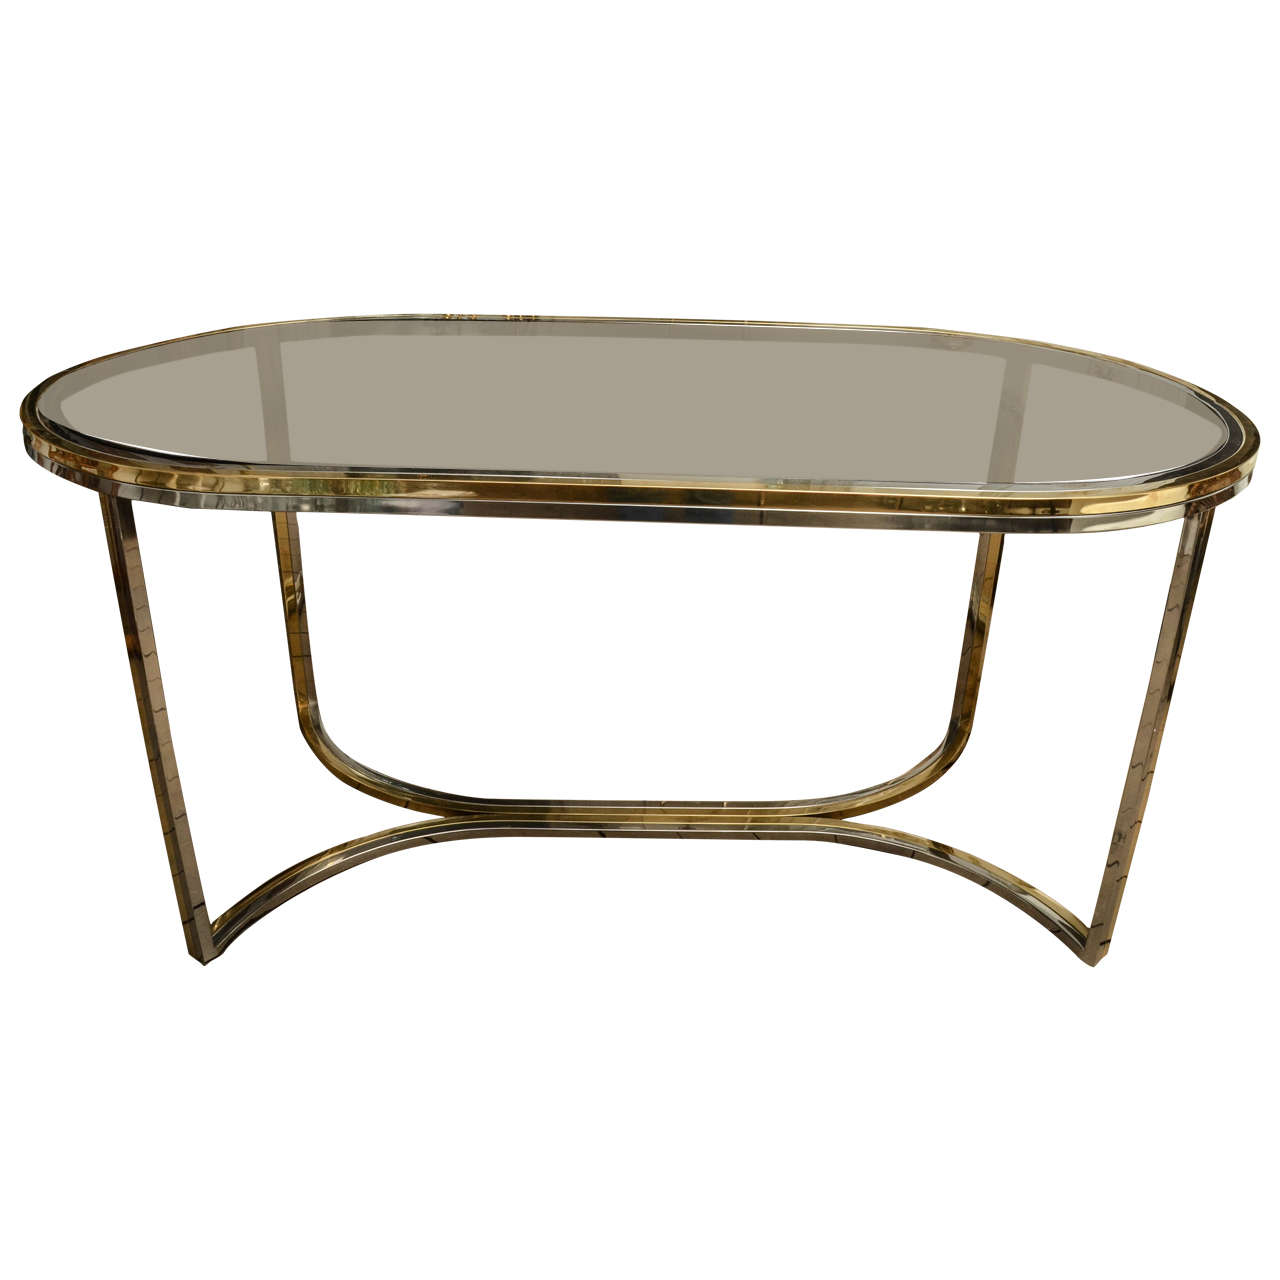 Chrome and brass oval dining table with smoked glass top Oval dining table